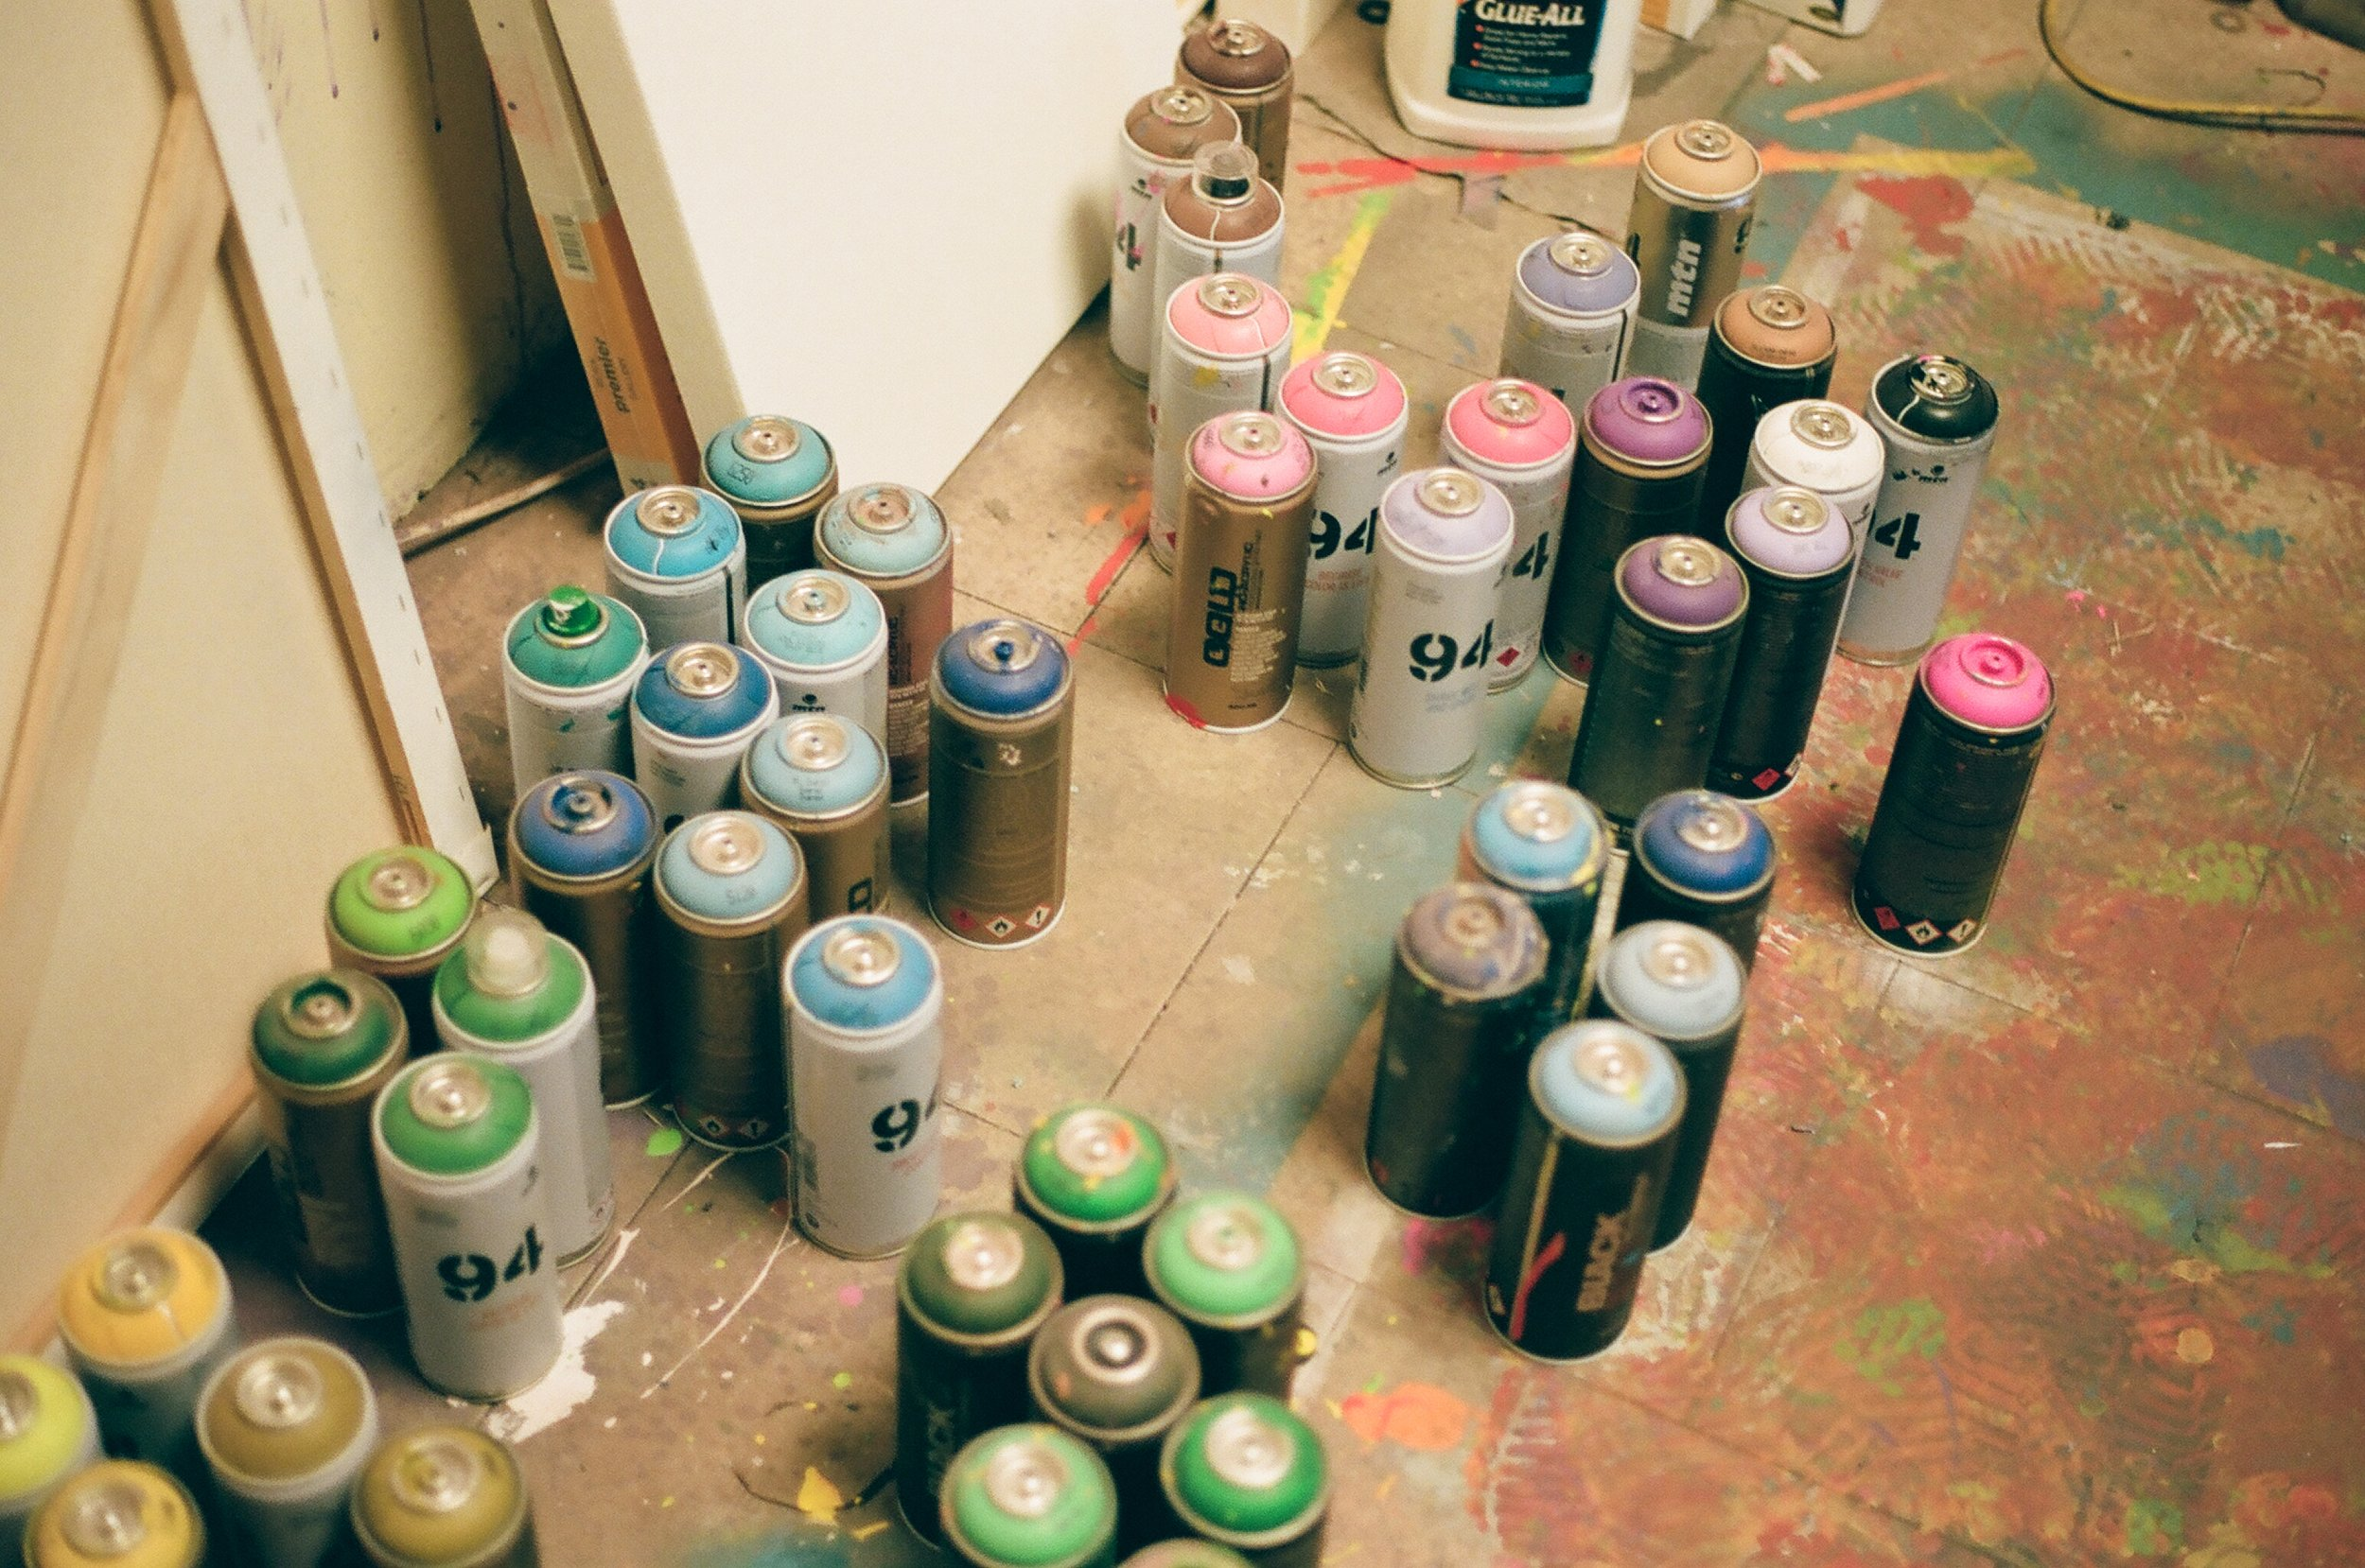 Brandon's assorted spray paints on 35mm